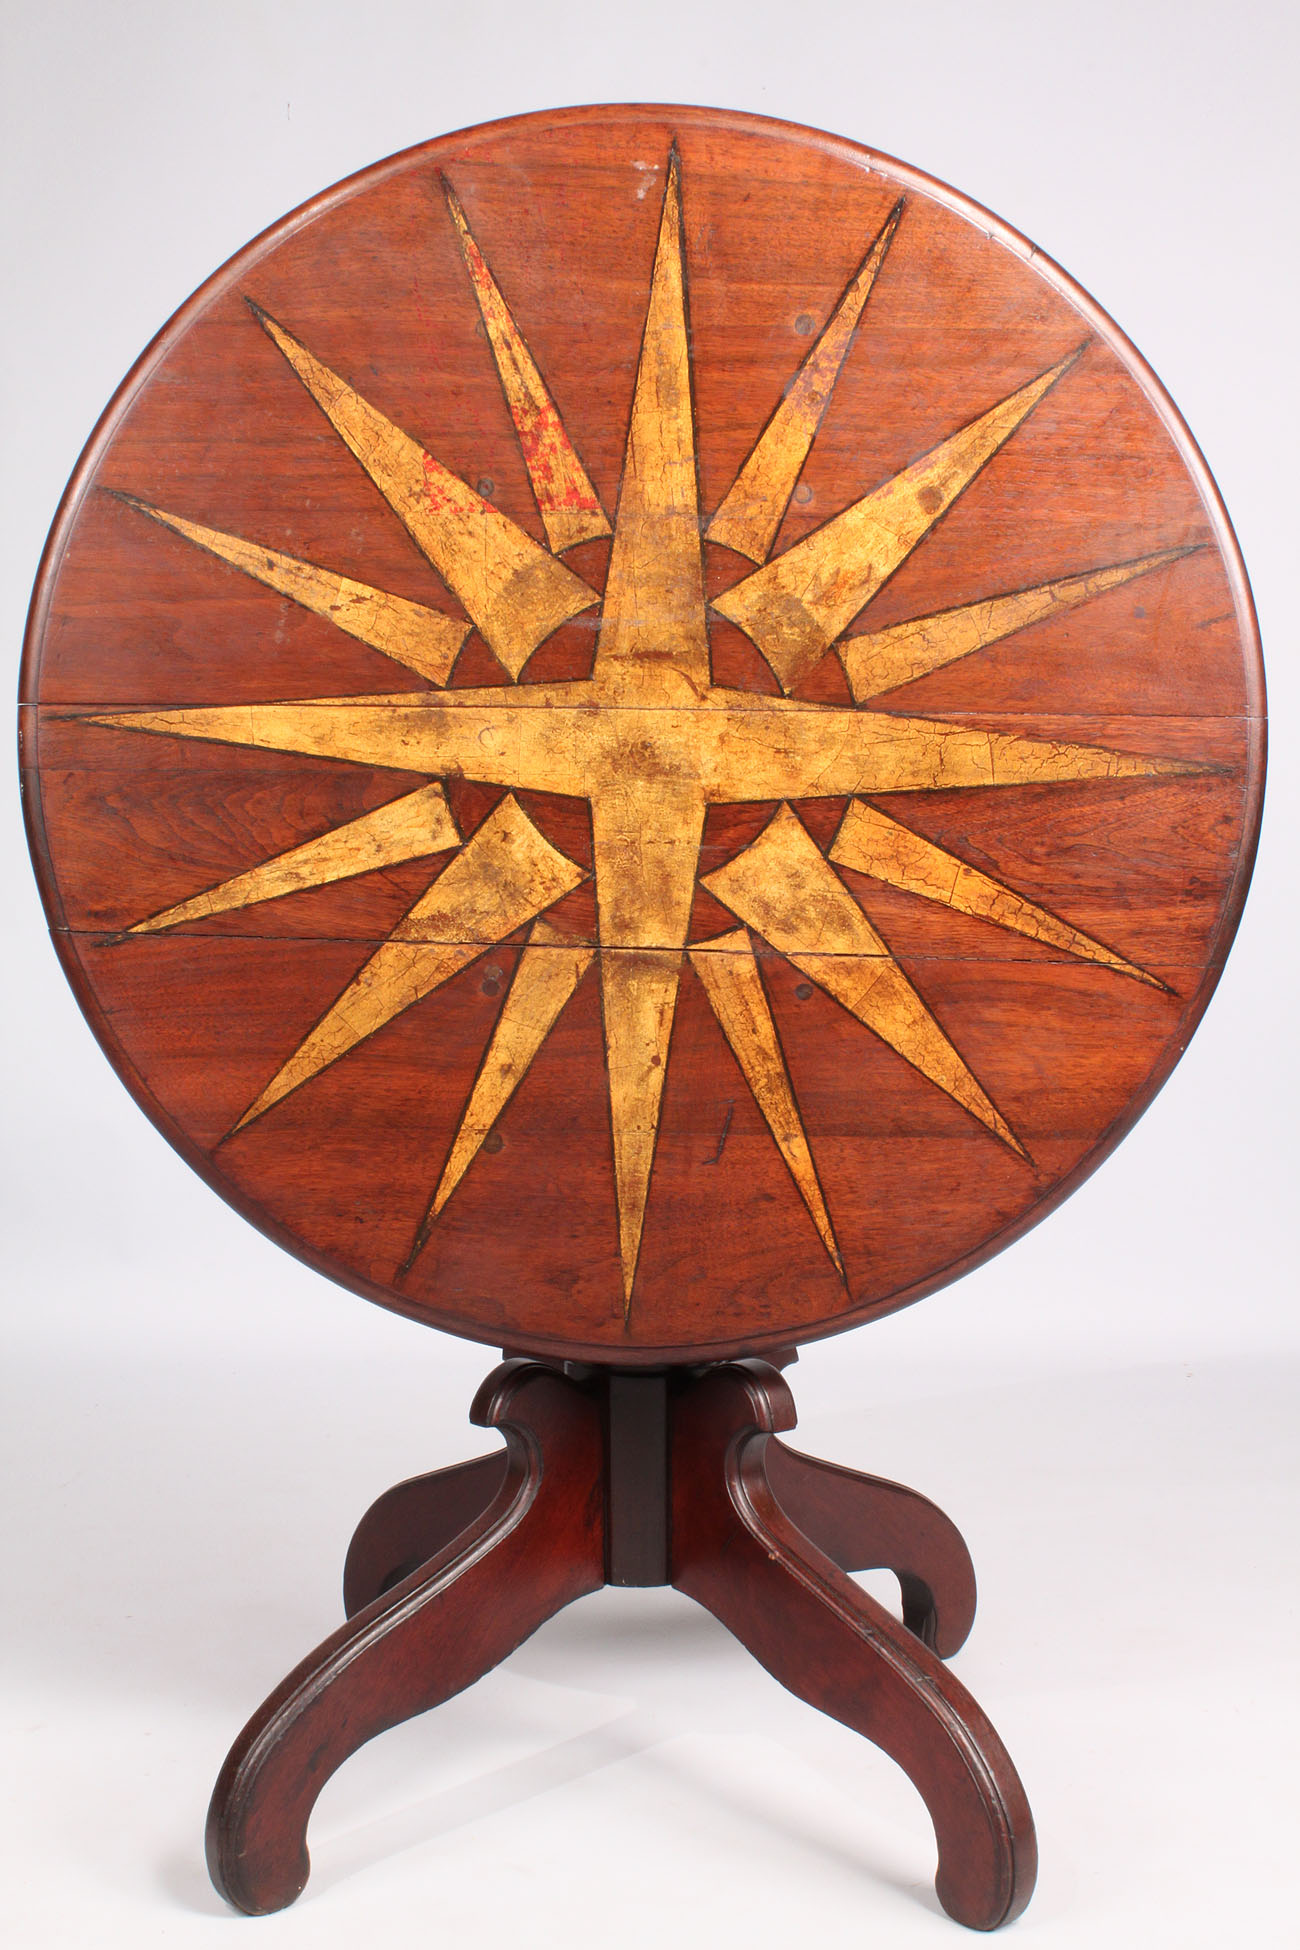 214: Tilt-top Walnut Table with Painted Compass Star